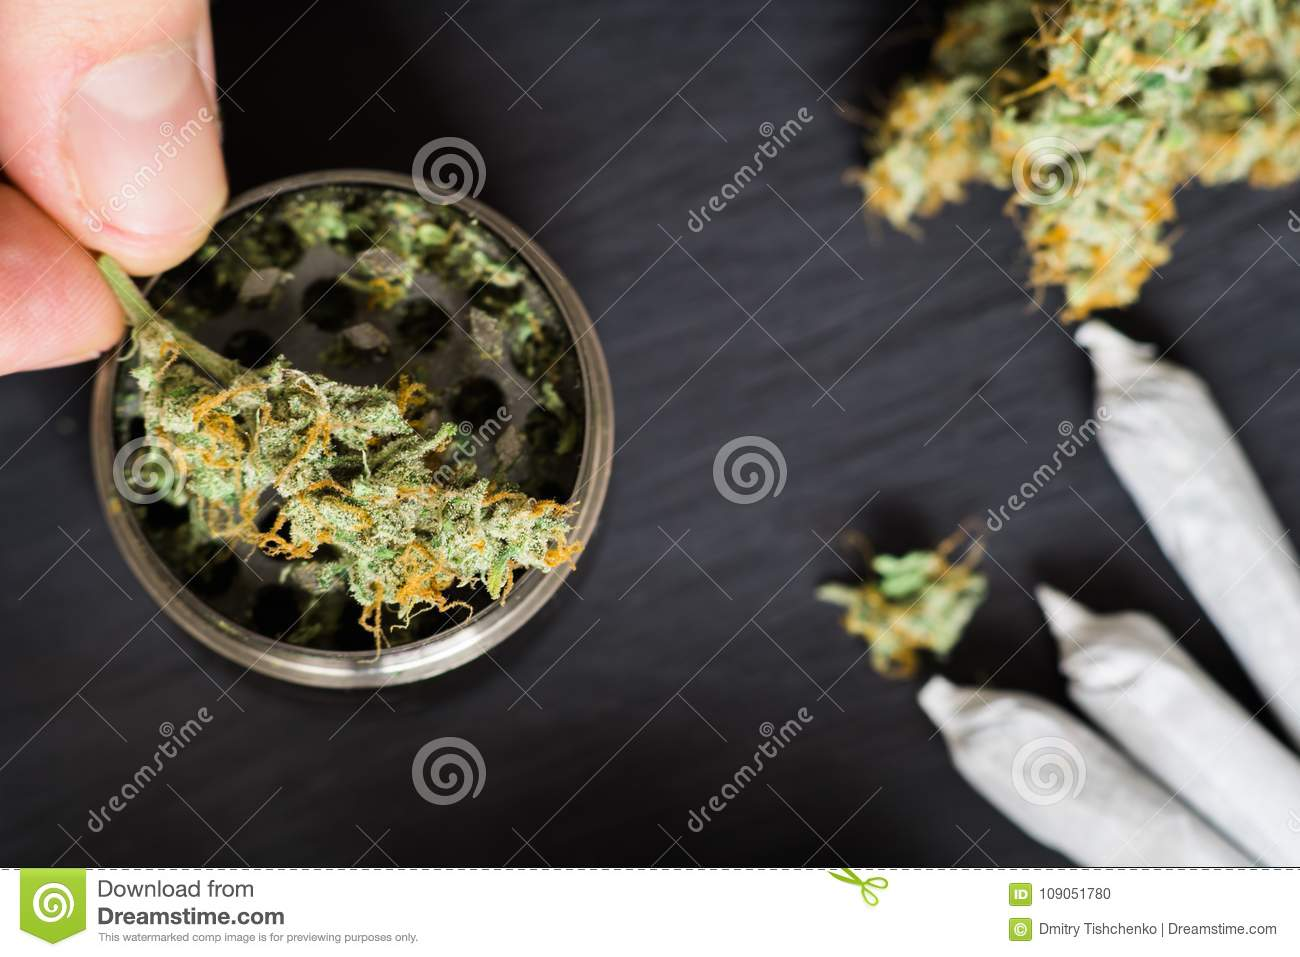 Grinder for chopping weed cannabis and a flower of marijuana on a black background surrounded by joint